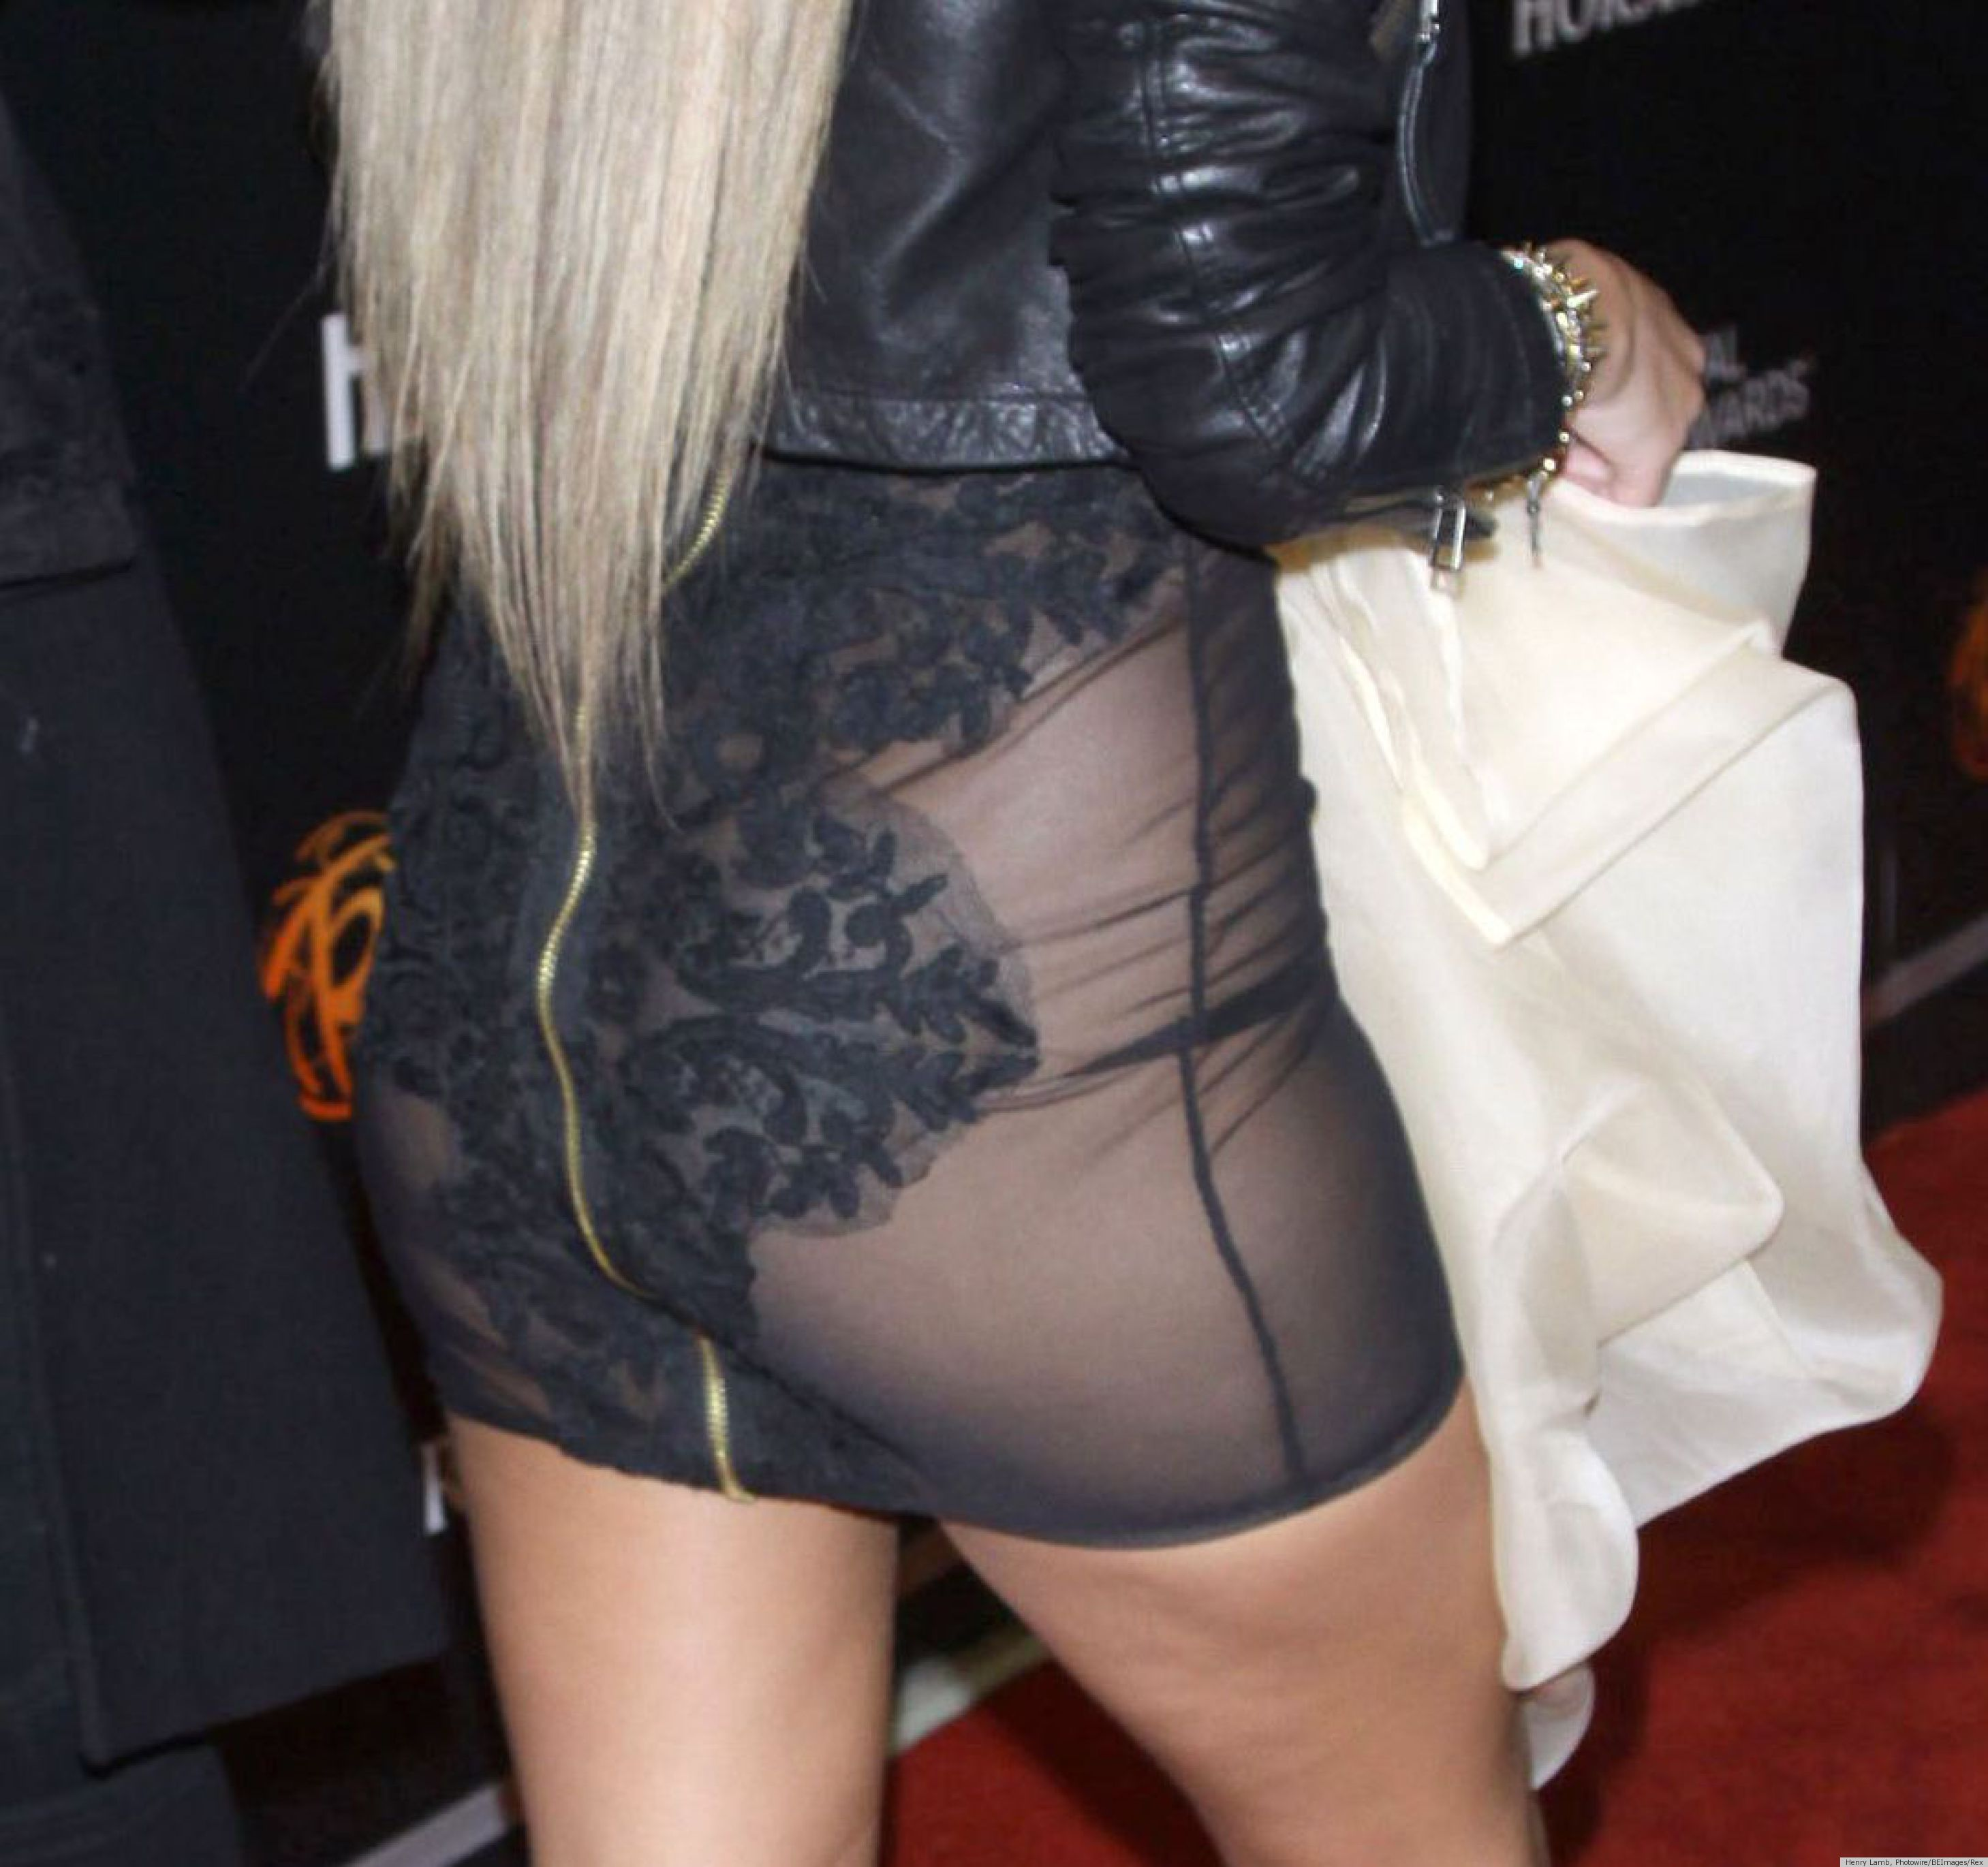 Wardrobe Malfunction: Worst See-Through Dress Flub Ever? (PHOTOS